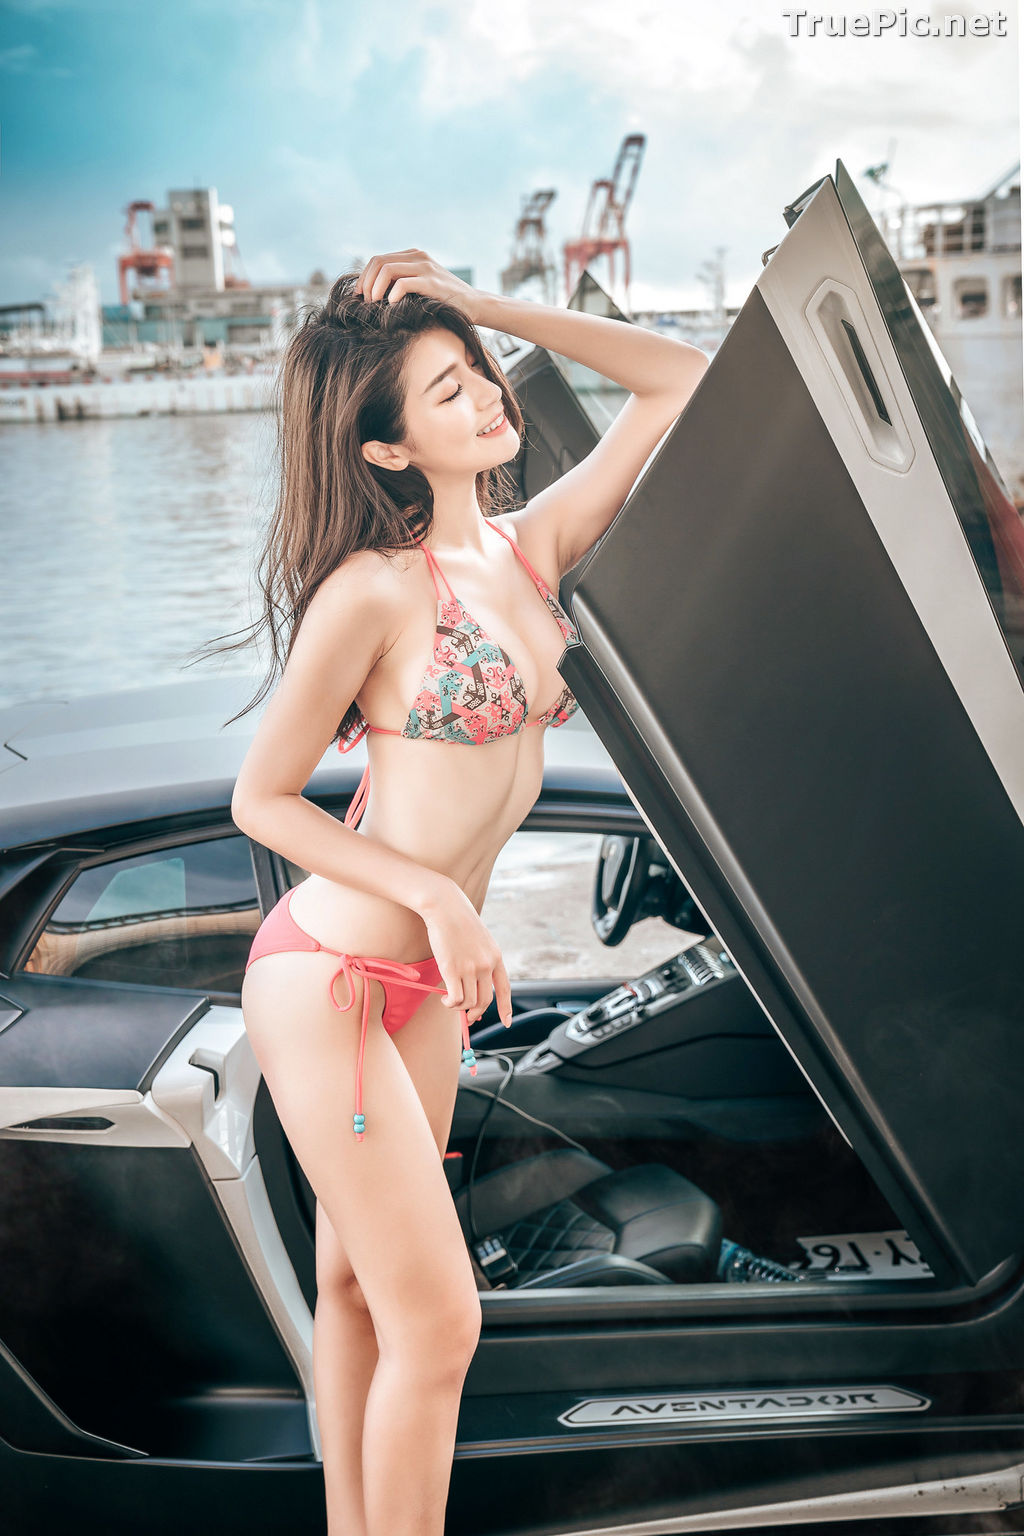 Image Taiwanese Model - 珈伊Femi - Sexy Beautiful Girl and Supercars - TruePic.net - Picture-1